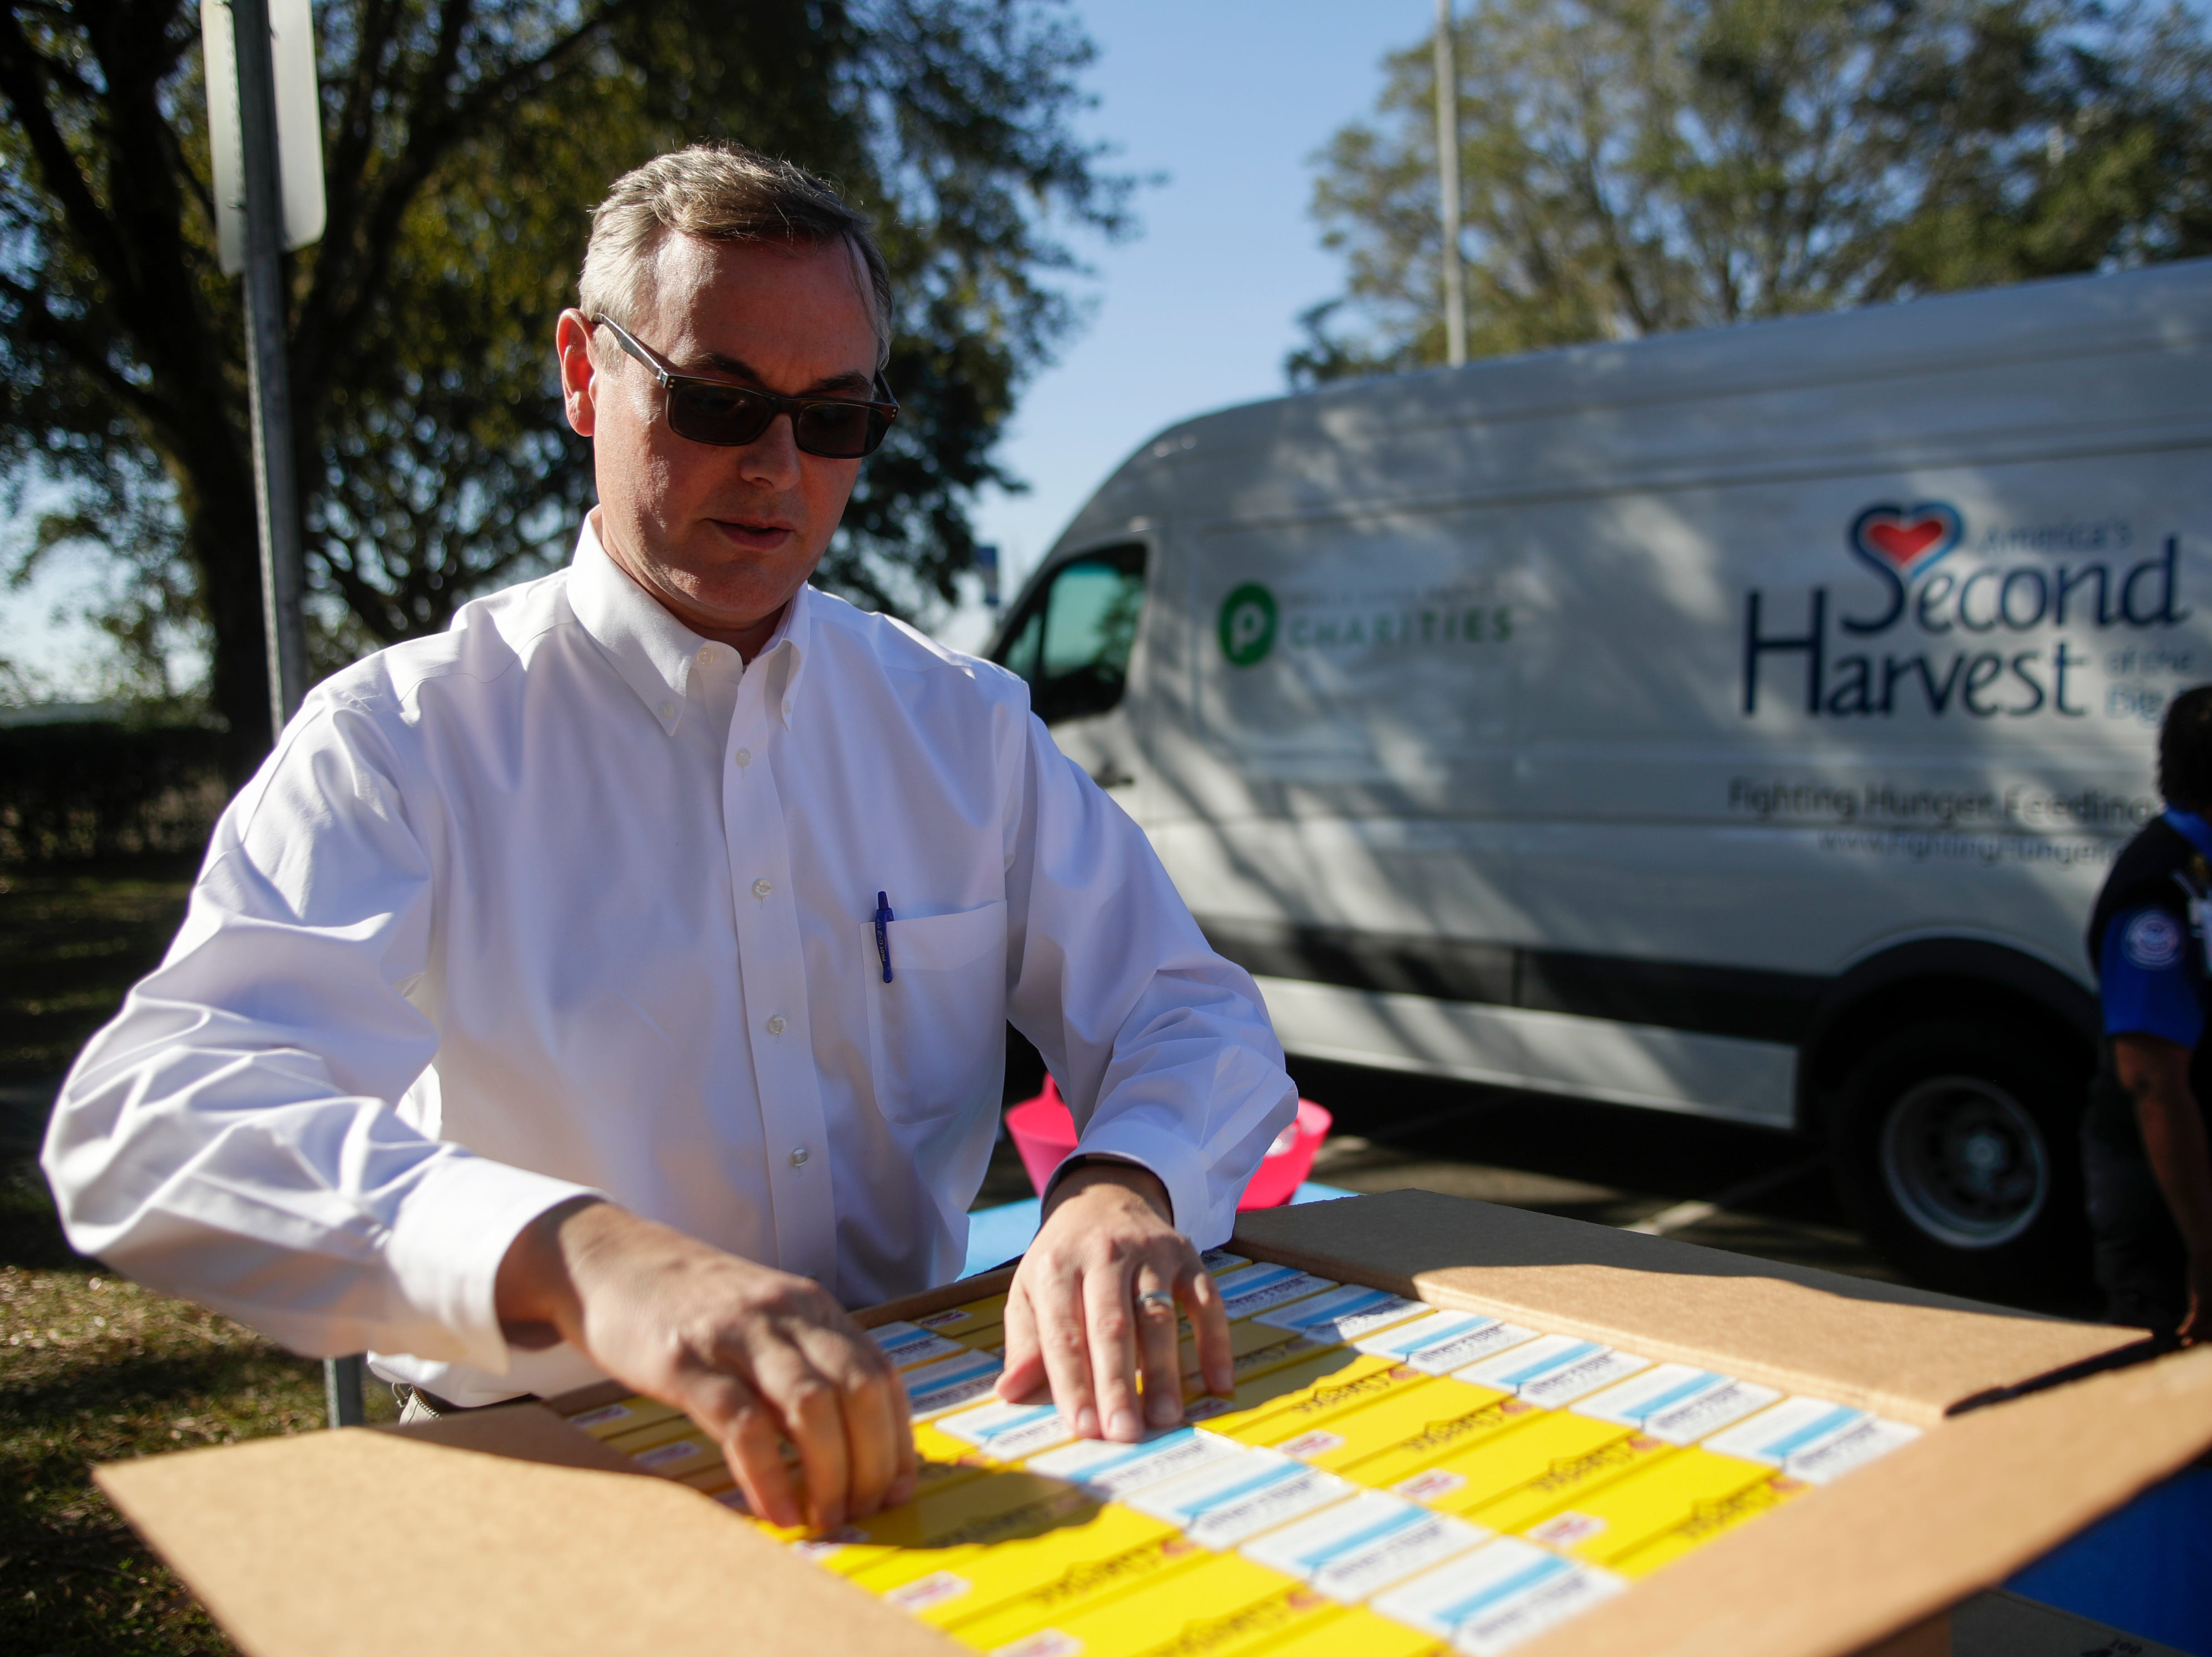 Second Harvest of the Big Bend CEO Rick Minor unpacks boxes of Cheerios to be given out to Transportation Security Administration employees at the Tallahassee International Airport Thursday, Jan. 17, 2019.